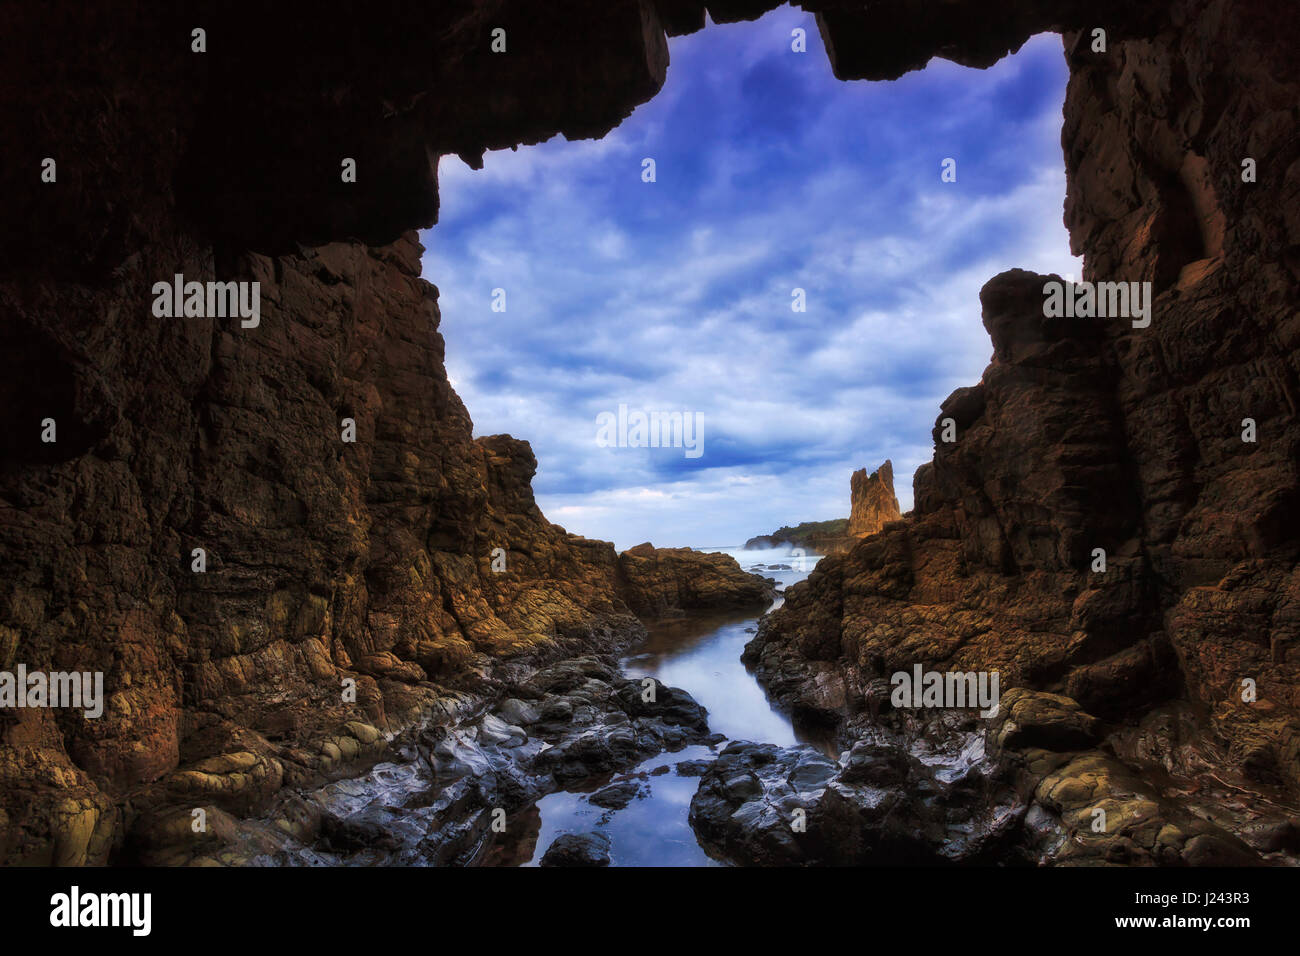 Rocky cave towards open sea at sunset near Bombo beach and Cathedral rocks of Pacific coast in Australia. - Stock Image